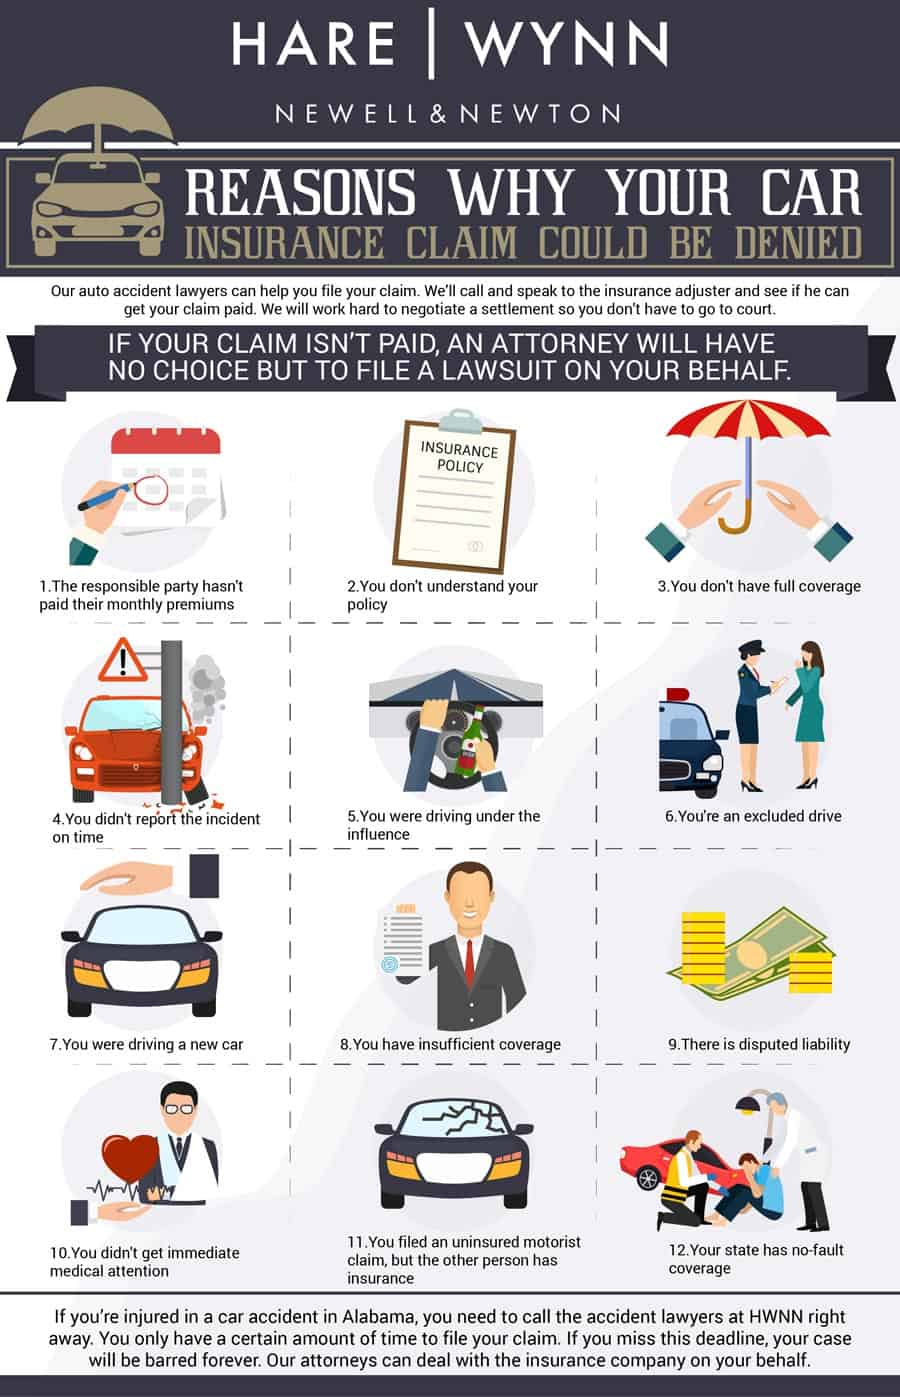 Reasons why insurance will denied claim - infographic